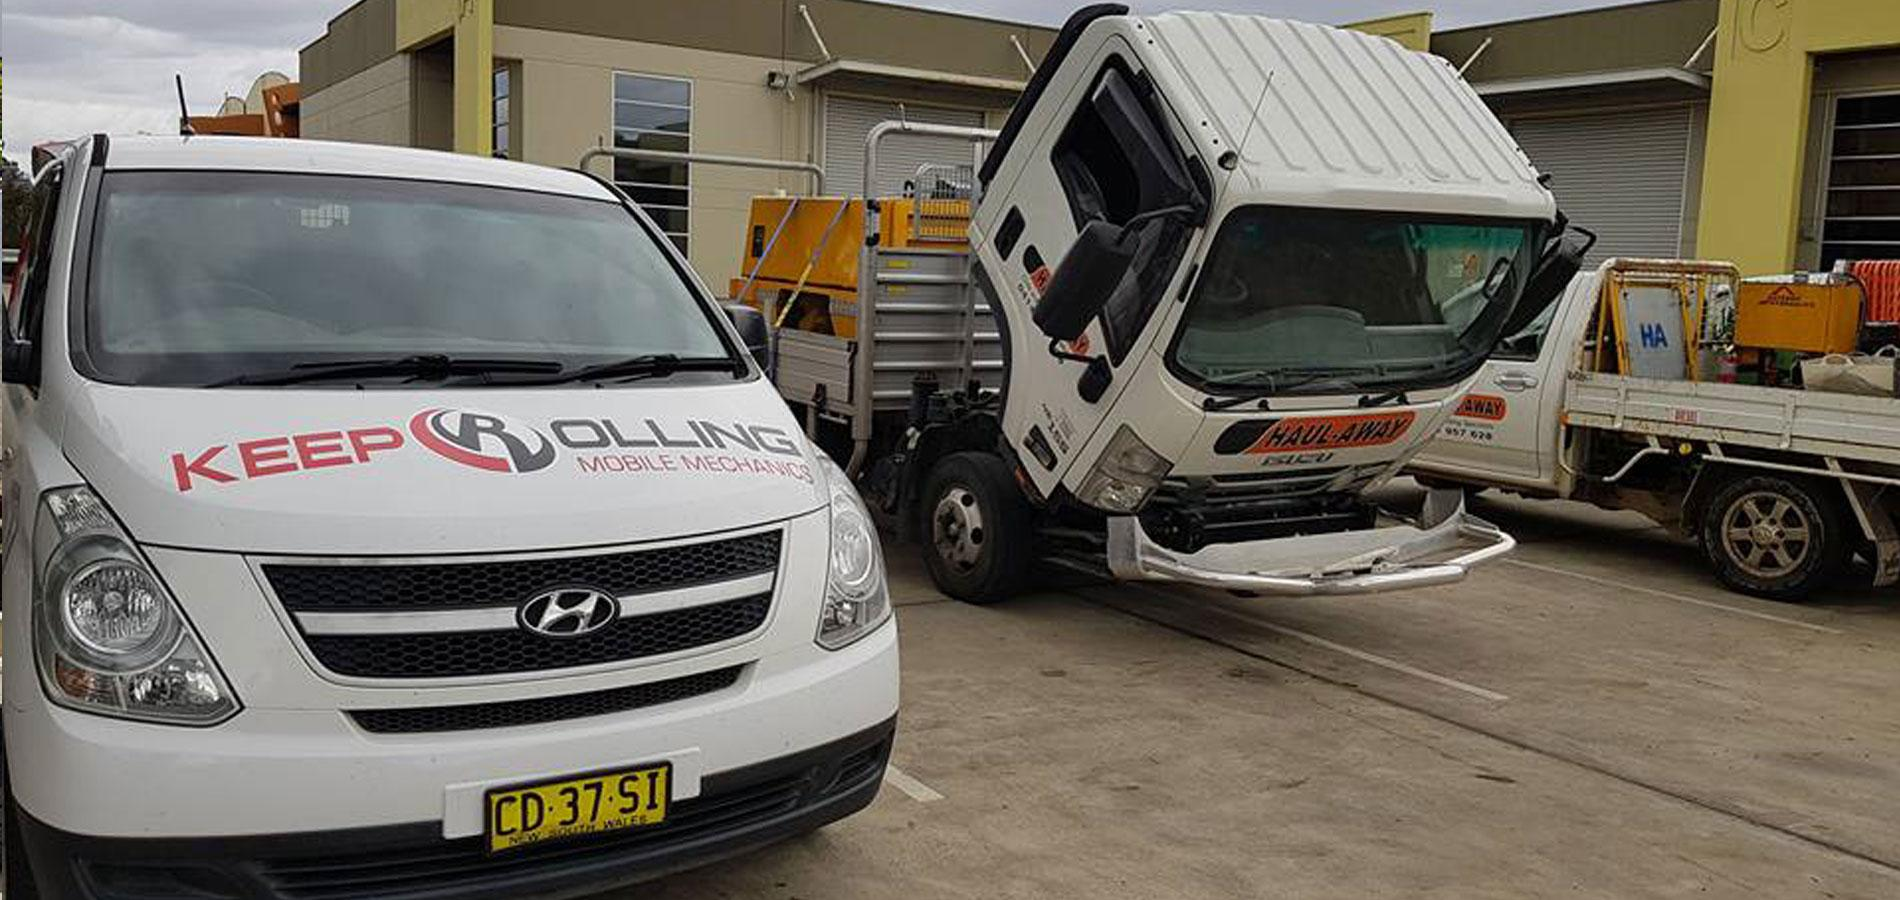 Light Truck Services and repairs